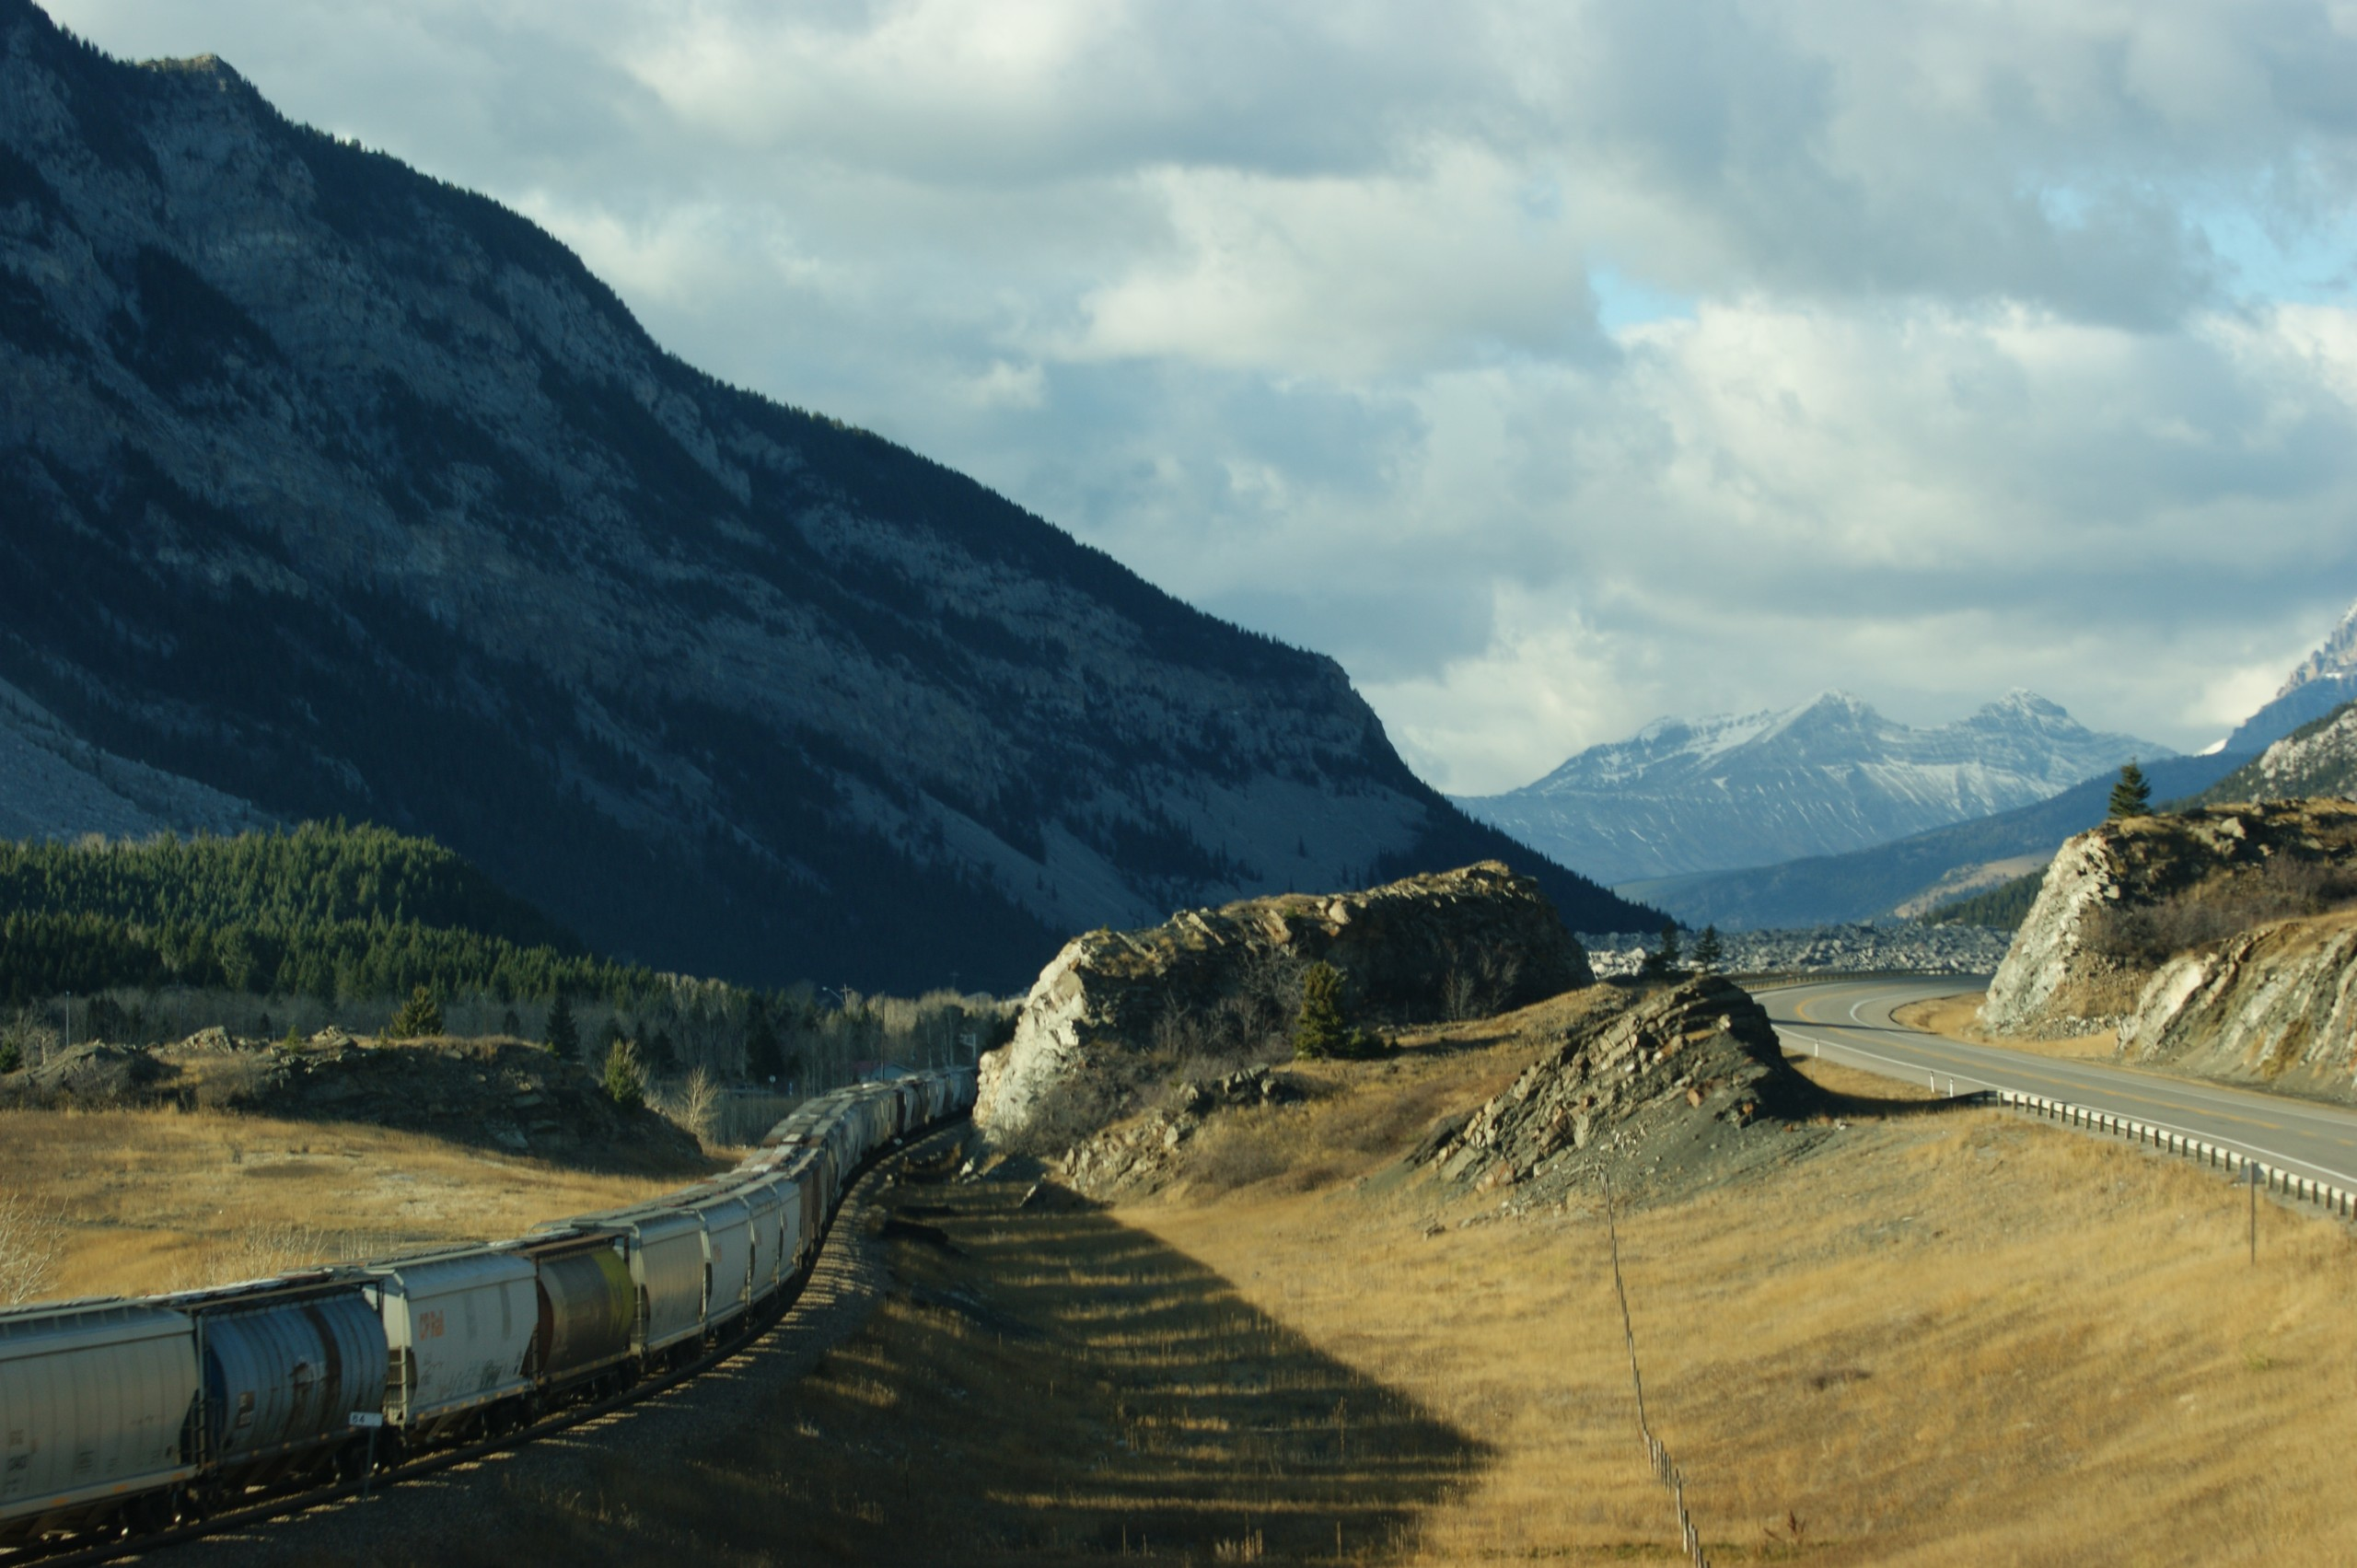 The Biggest Ball Of String: Frank Slide, Crowsnest Pass ...